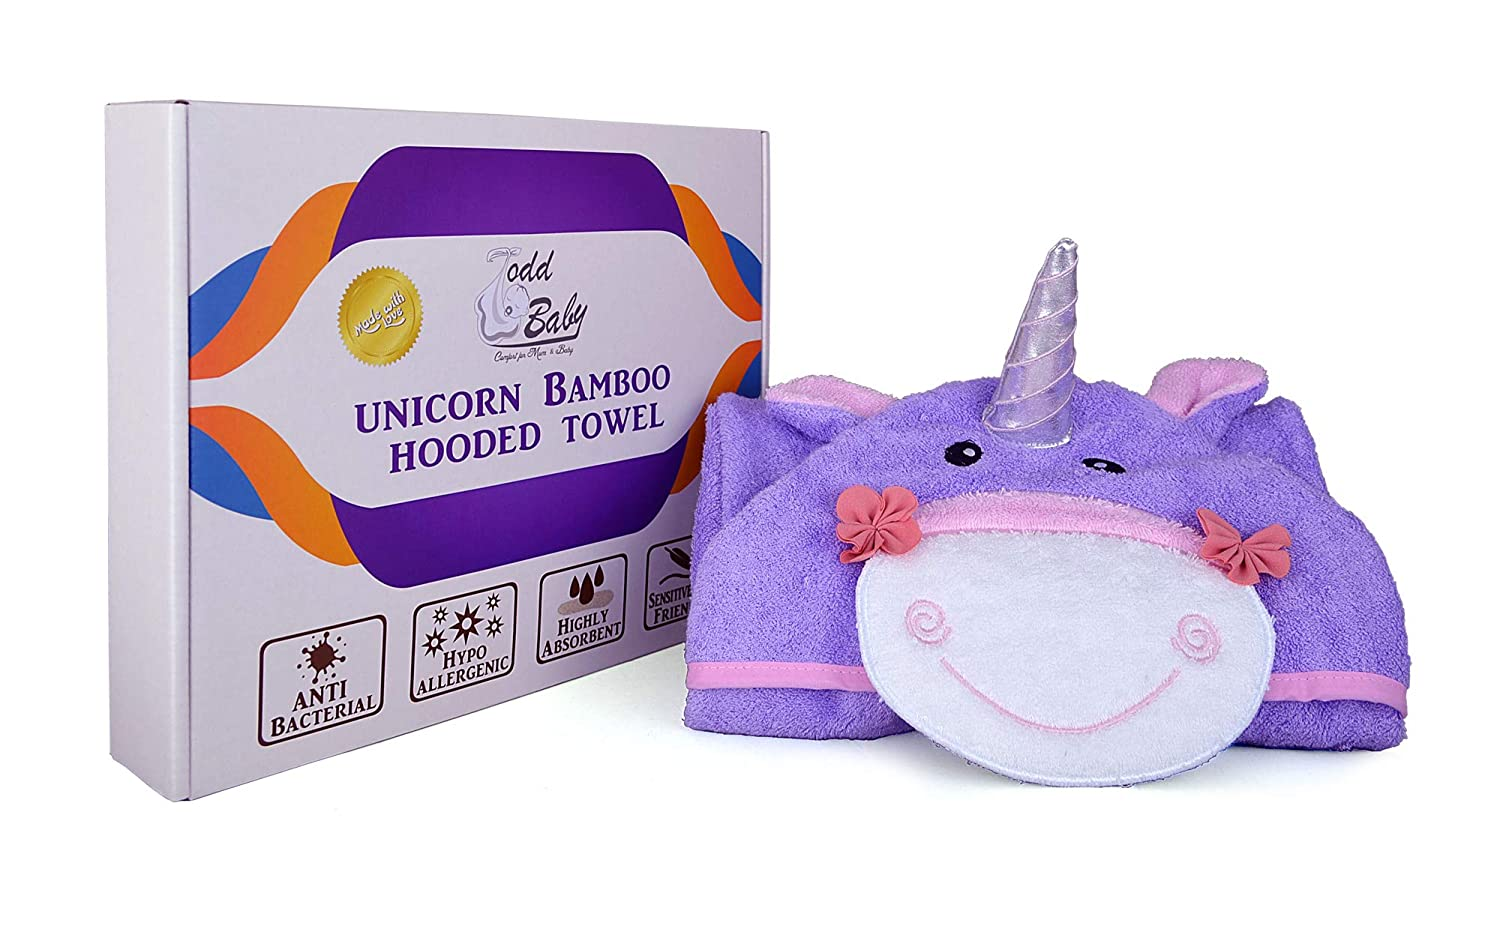 Shower Registry Gift Todd Baby Soft Anti Bacterial Unicorn Bamboo Cotton Hooded Bath Towel White Highly Absorbent